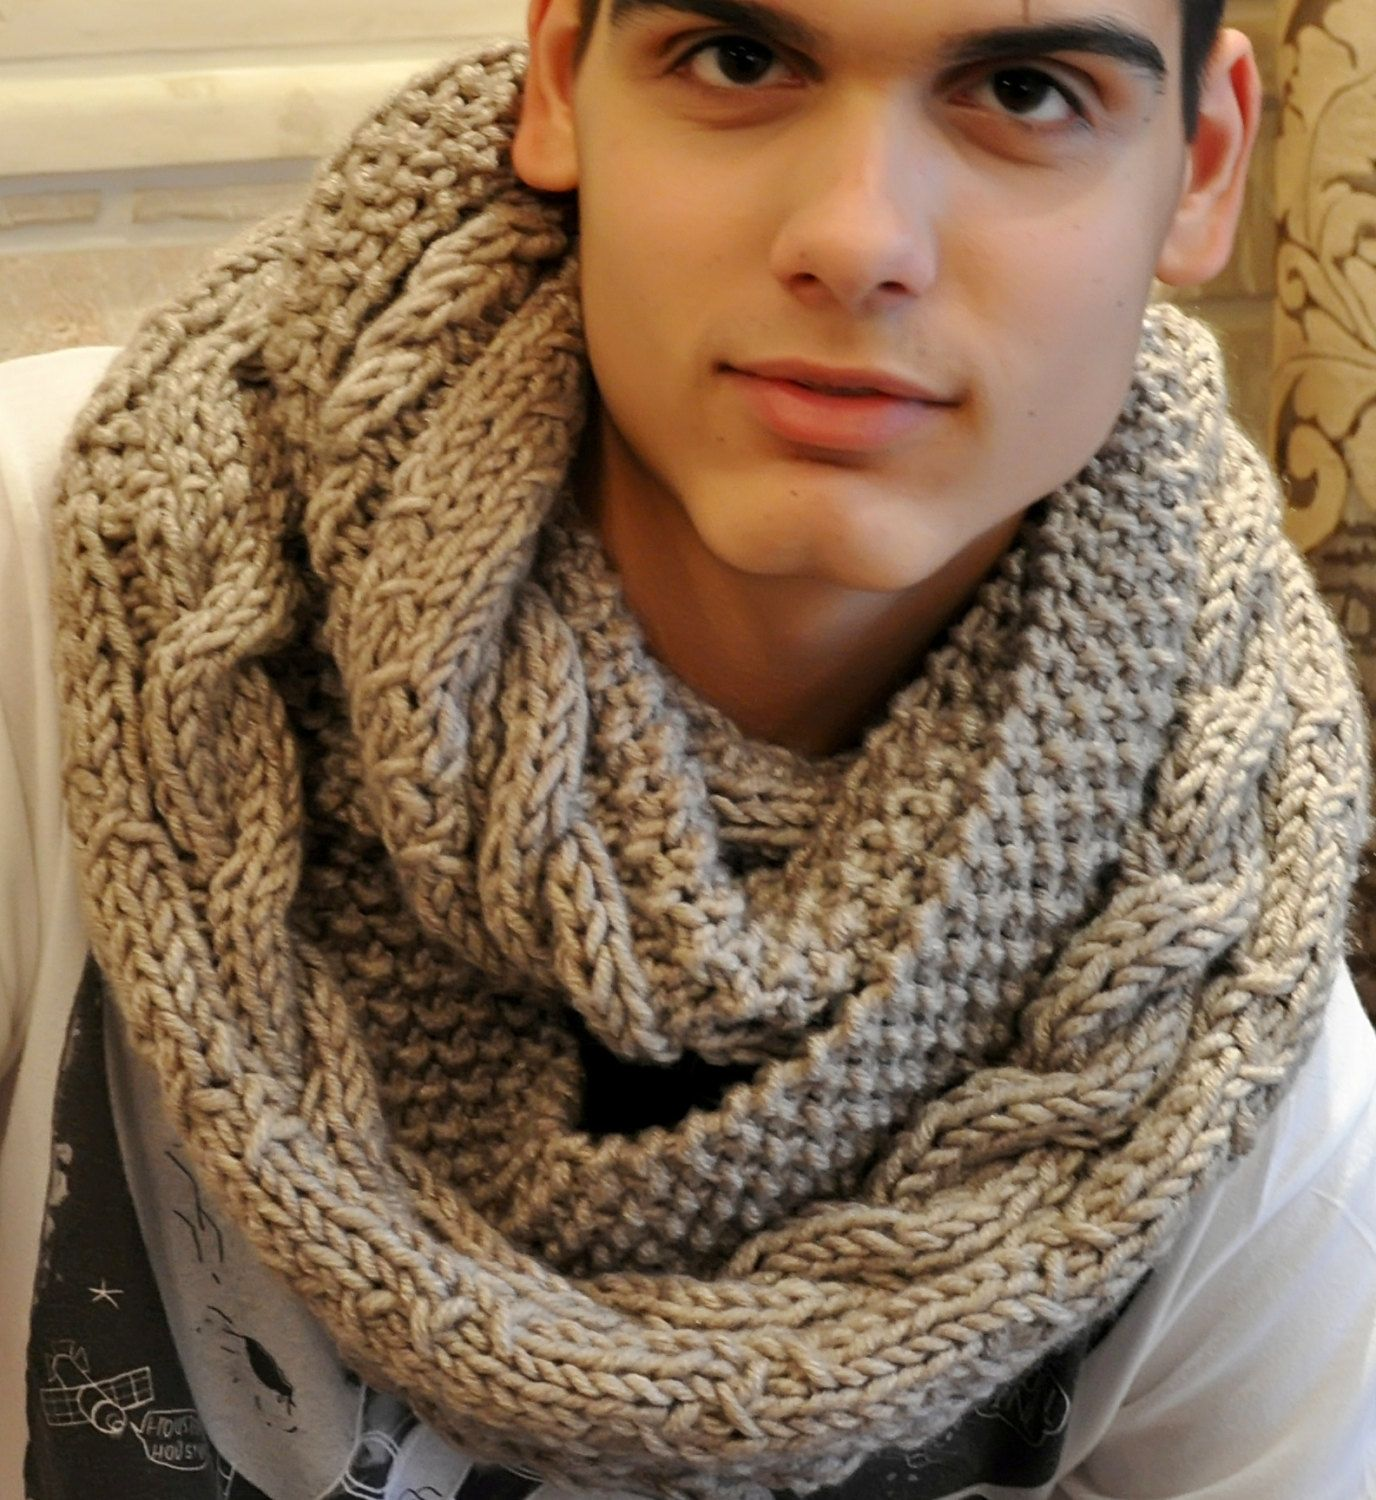 Beige Infinity Scarf for Men, Knit Cowl | Men's Fashion ...